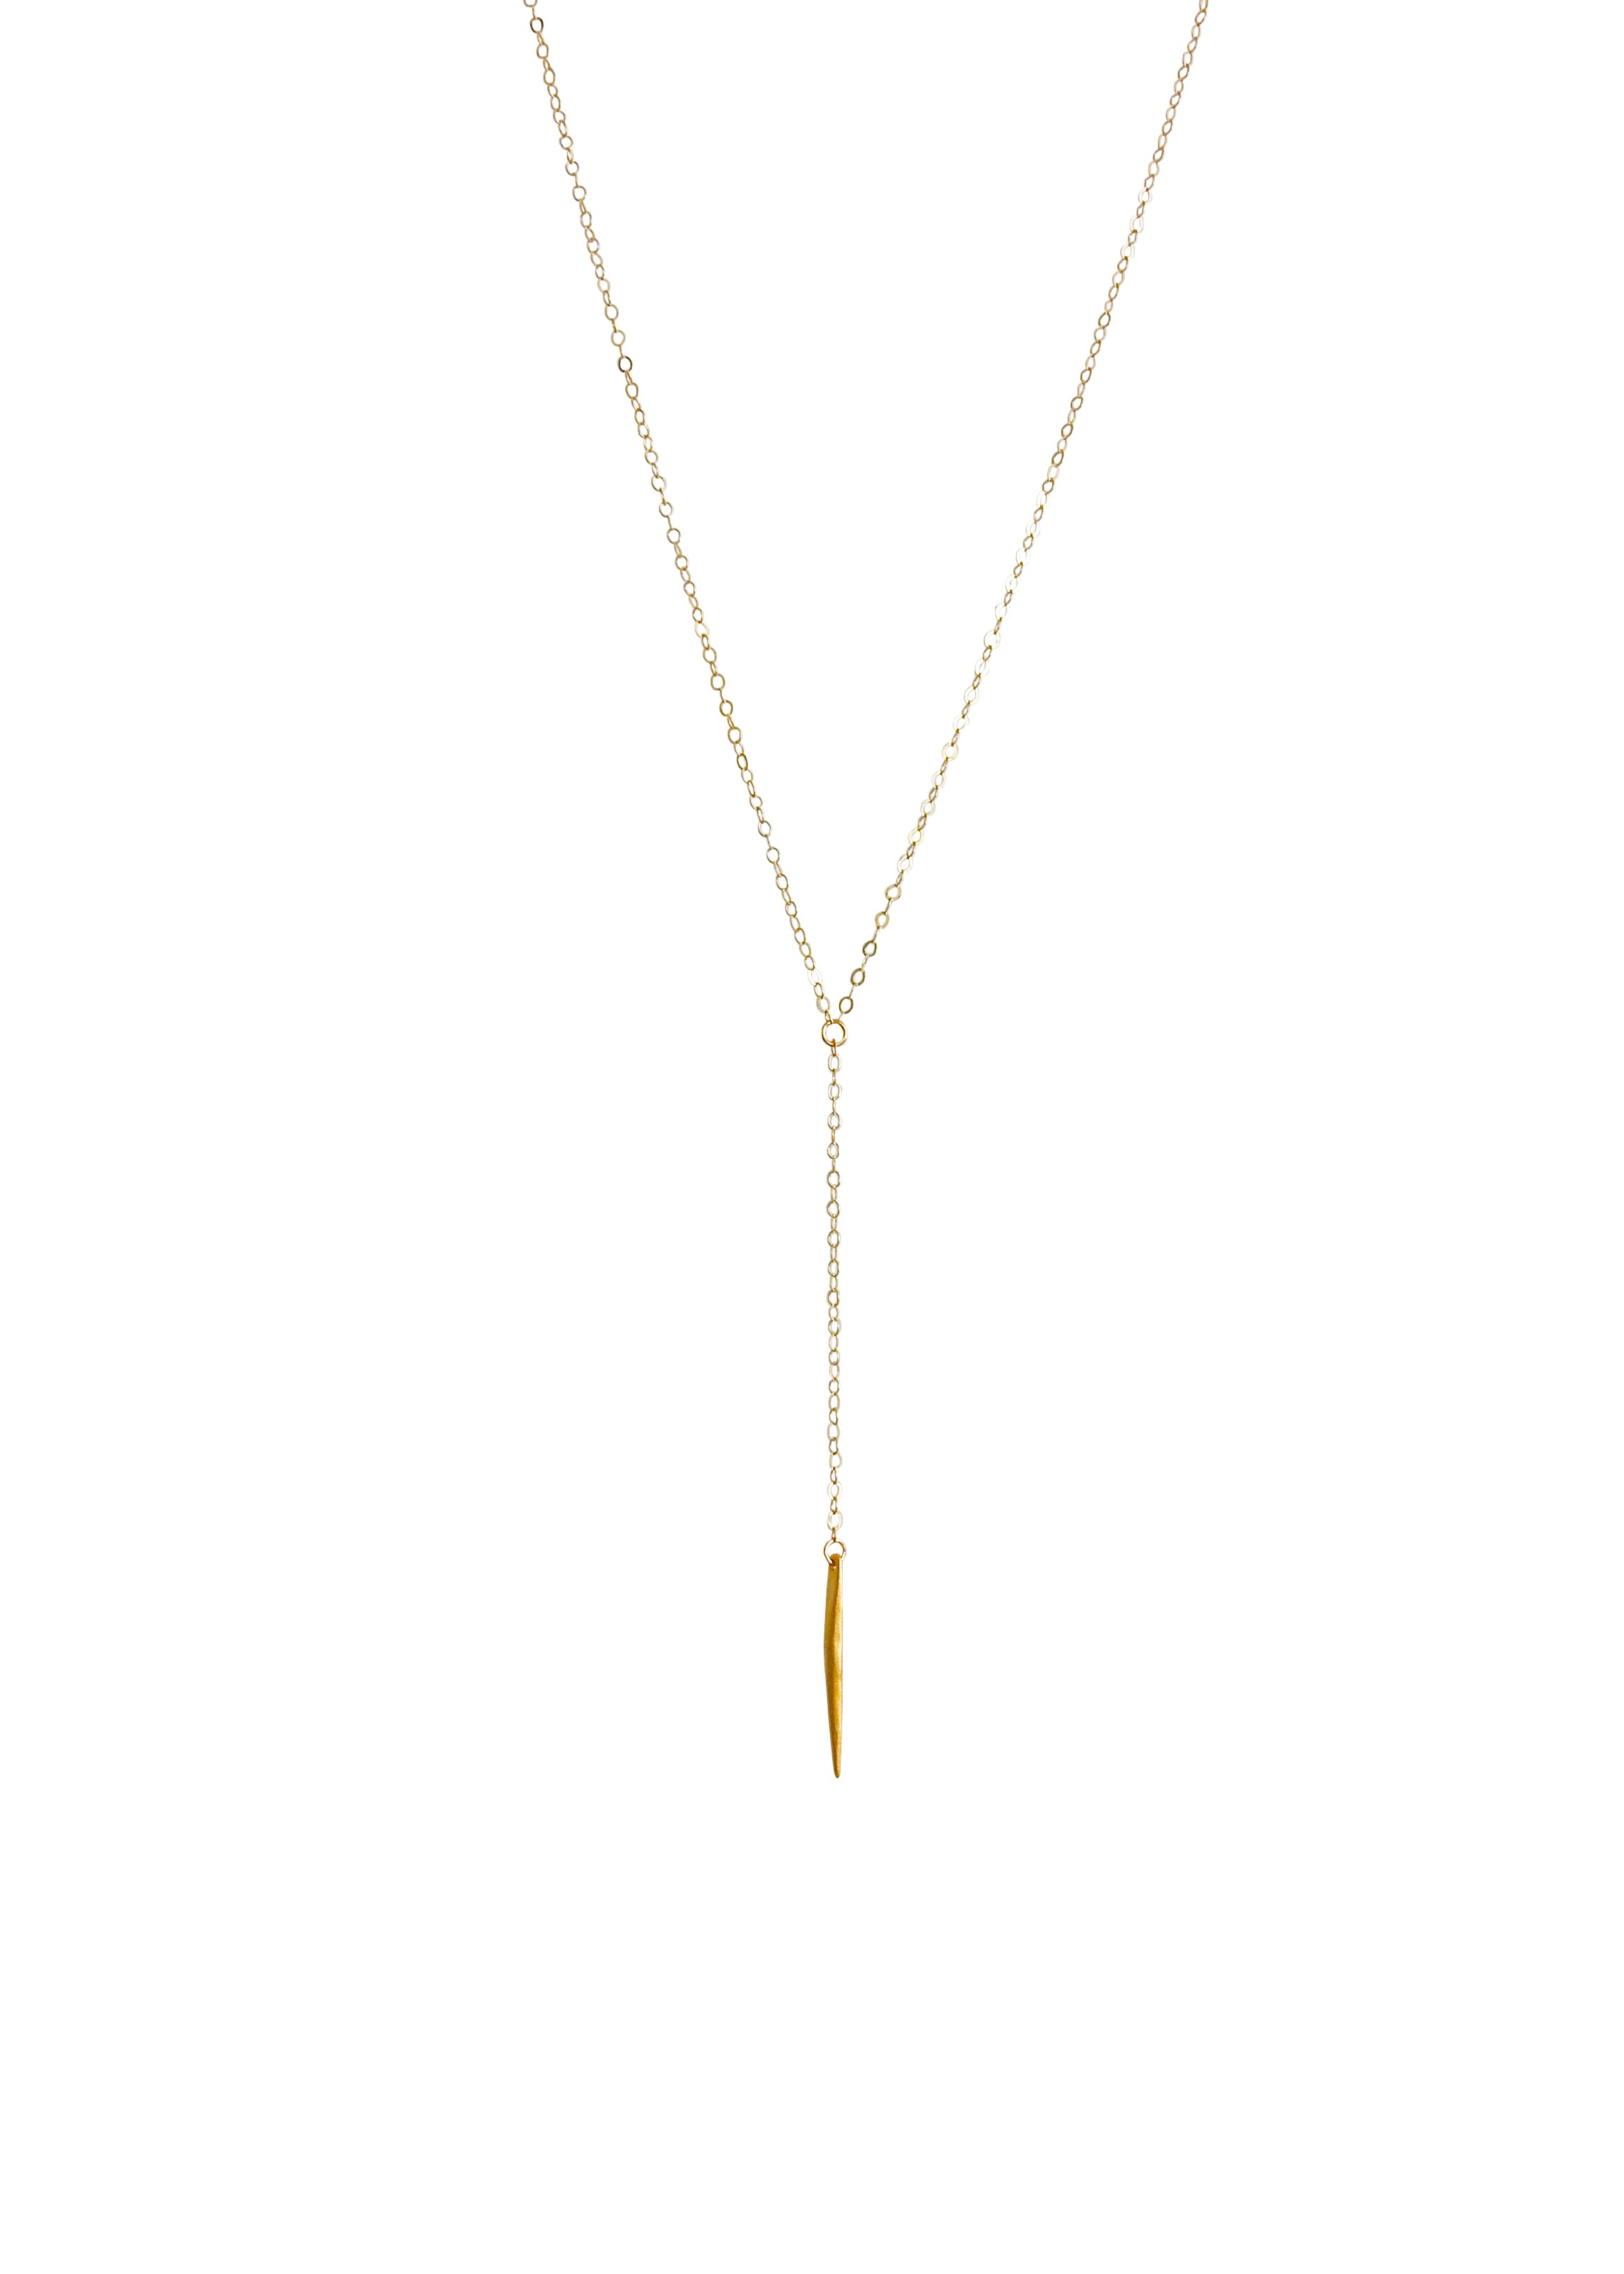 Delicate Gold Lariat RiRi Necklace Apostle In House Collection